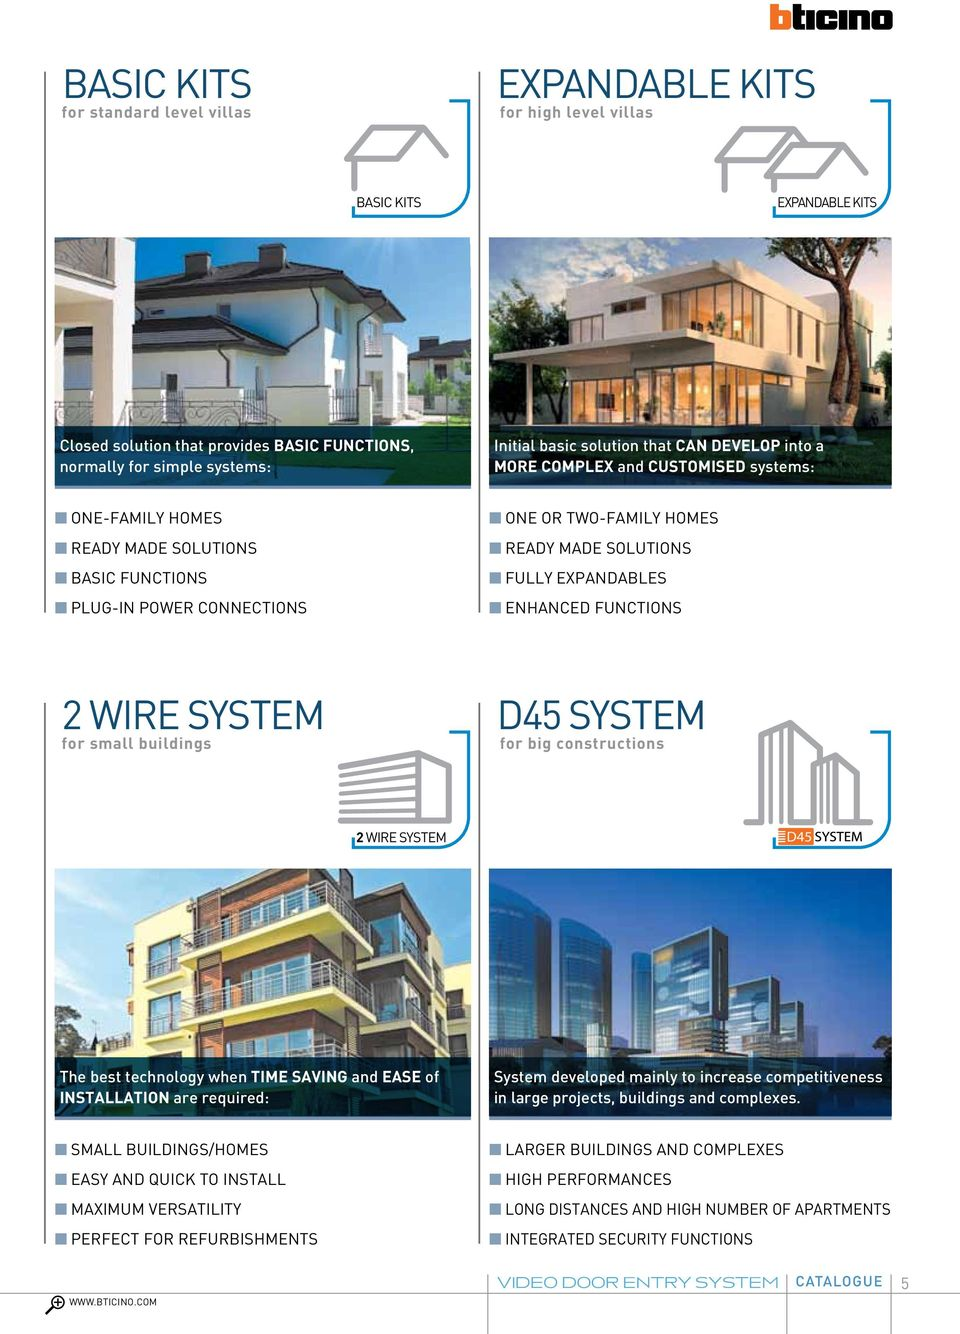 FULLY EXPANDABLES ENHANCED FUNCTIONS 2 wire system for small buildings d45 system for big constructions 2 wire system D45 The best technology when TIME SAVING and EASE of INSTALLATION are required: